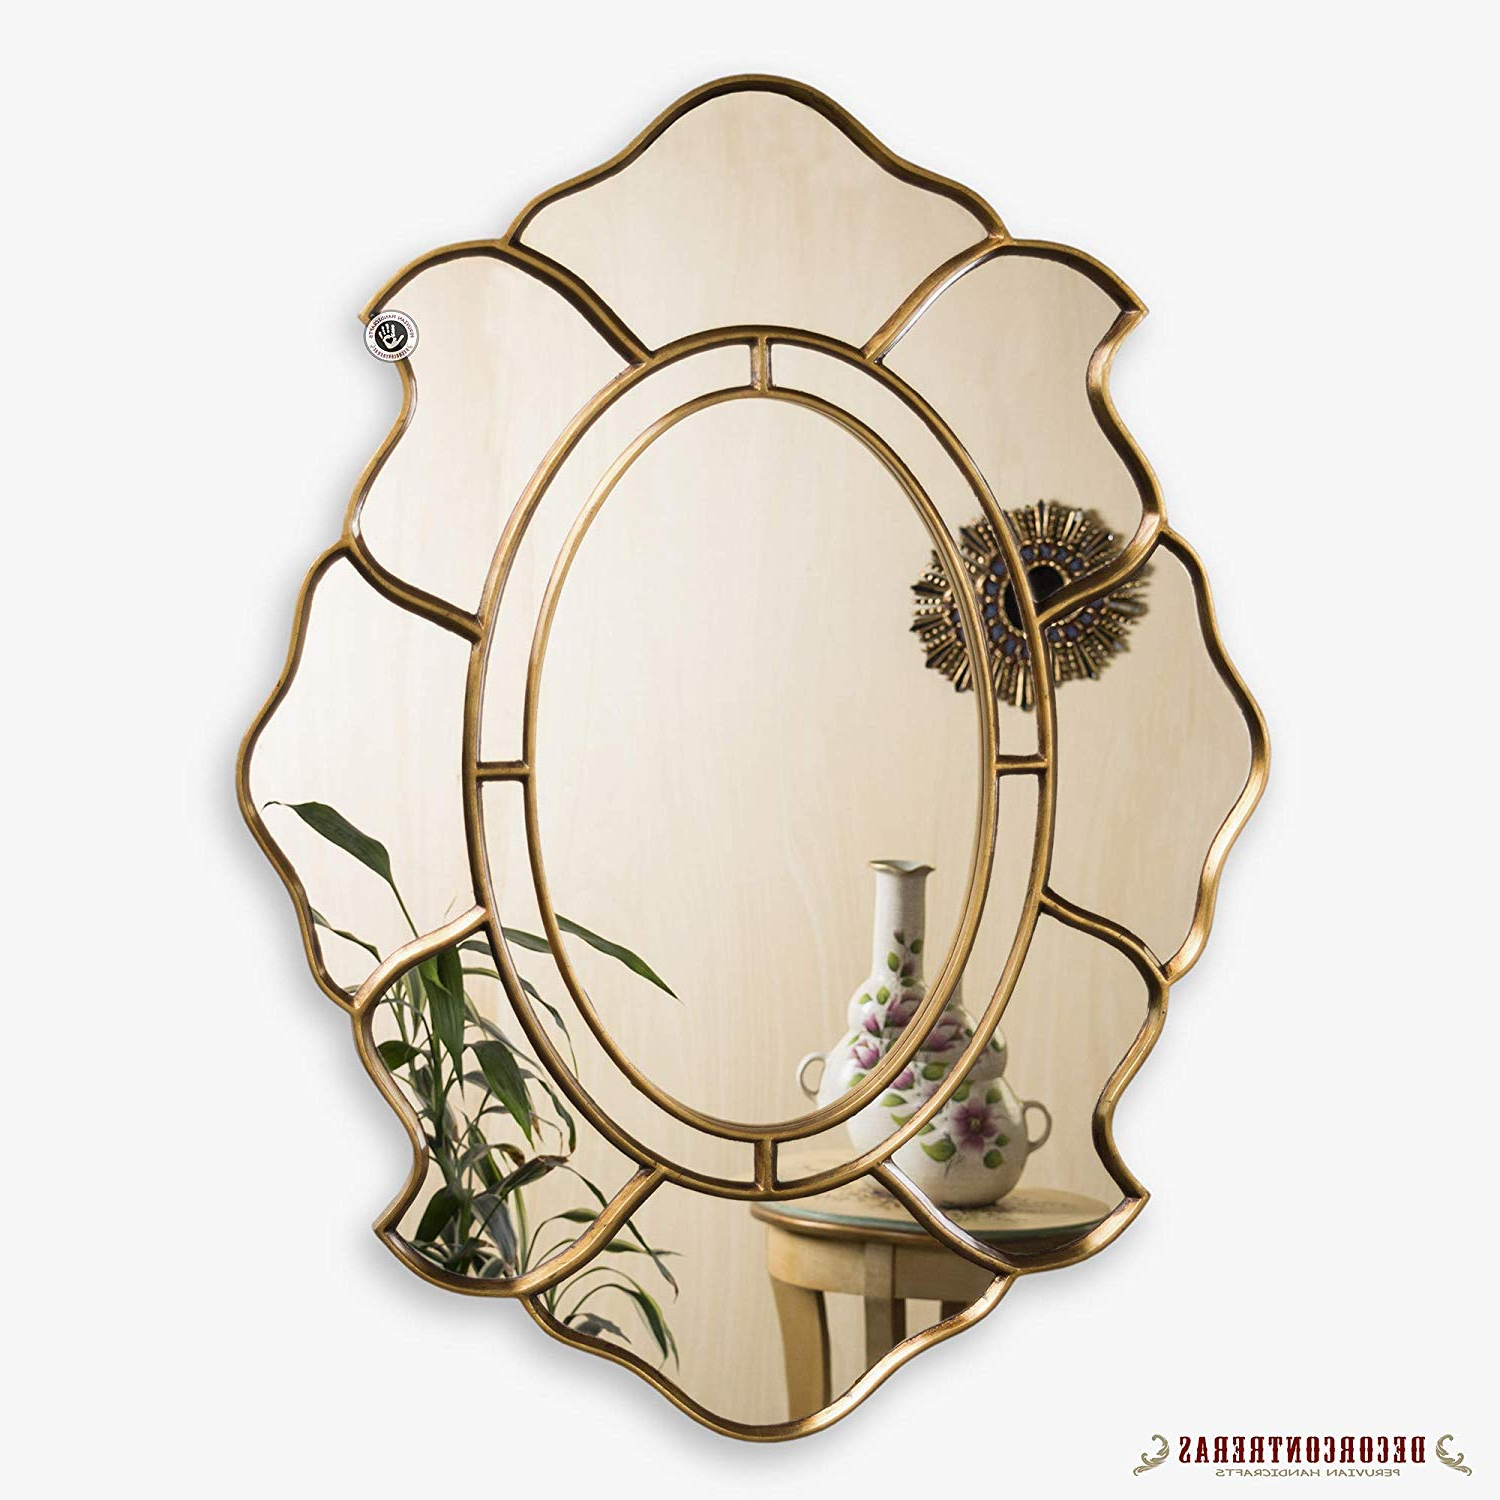 Accent Mirrors Within Most Recently Released Amazon: Gold Oval Accent Wall Mirror, Decorative Oval Mirror For (View 10 of 20)